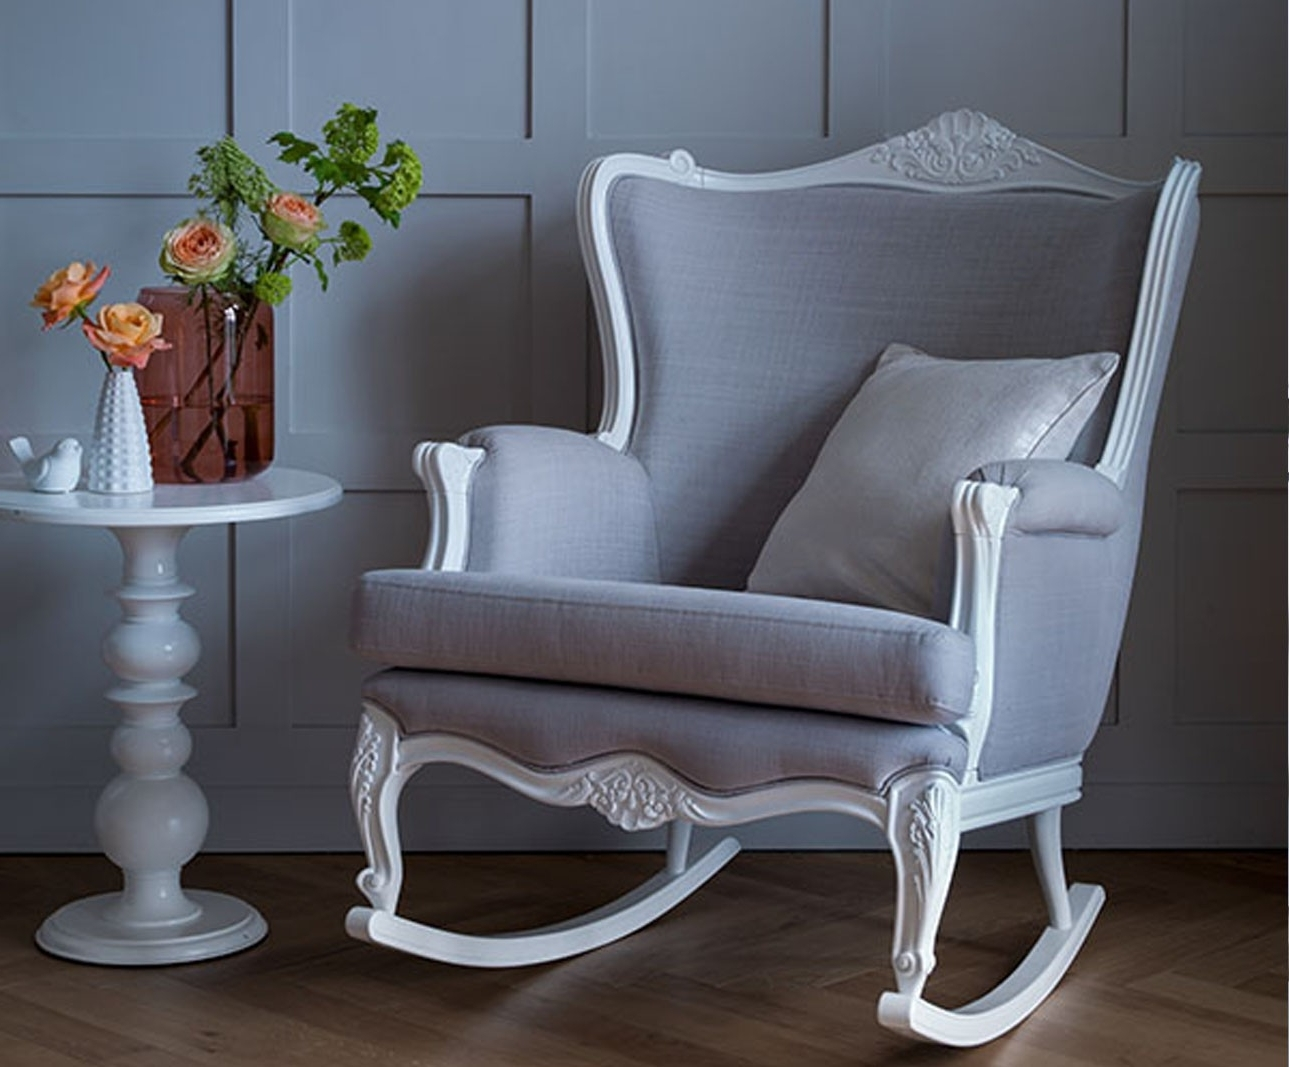 Well Liked Luxury Nursing Rocking Chair — All Modern Rocking Chairs : Good And Pertaining To Rocking Chairs For Nursing (View 2 of 20)